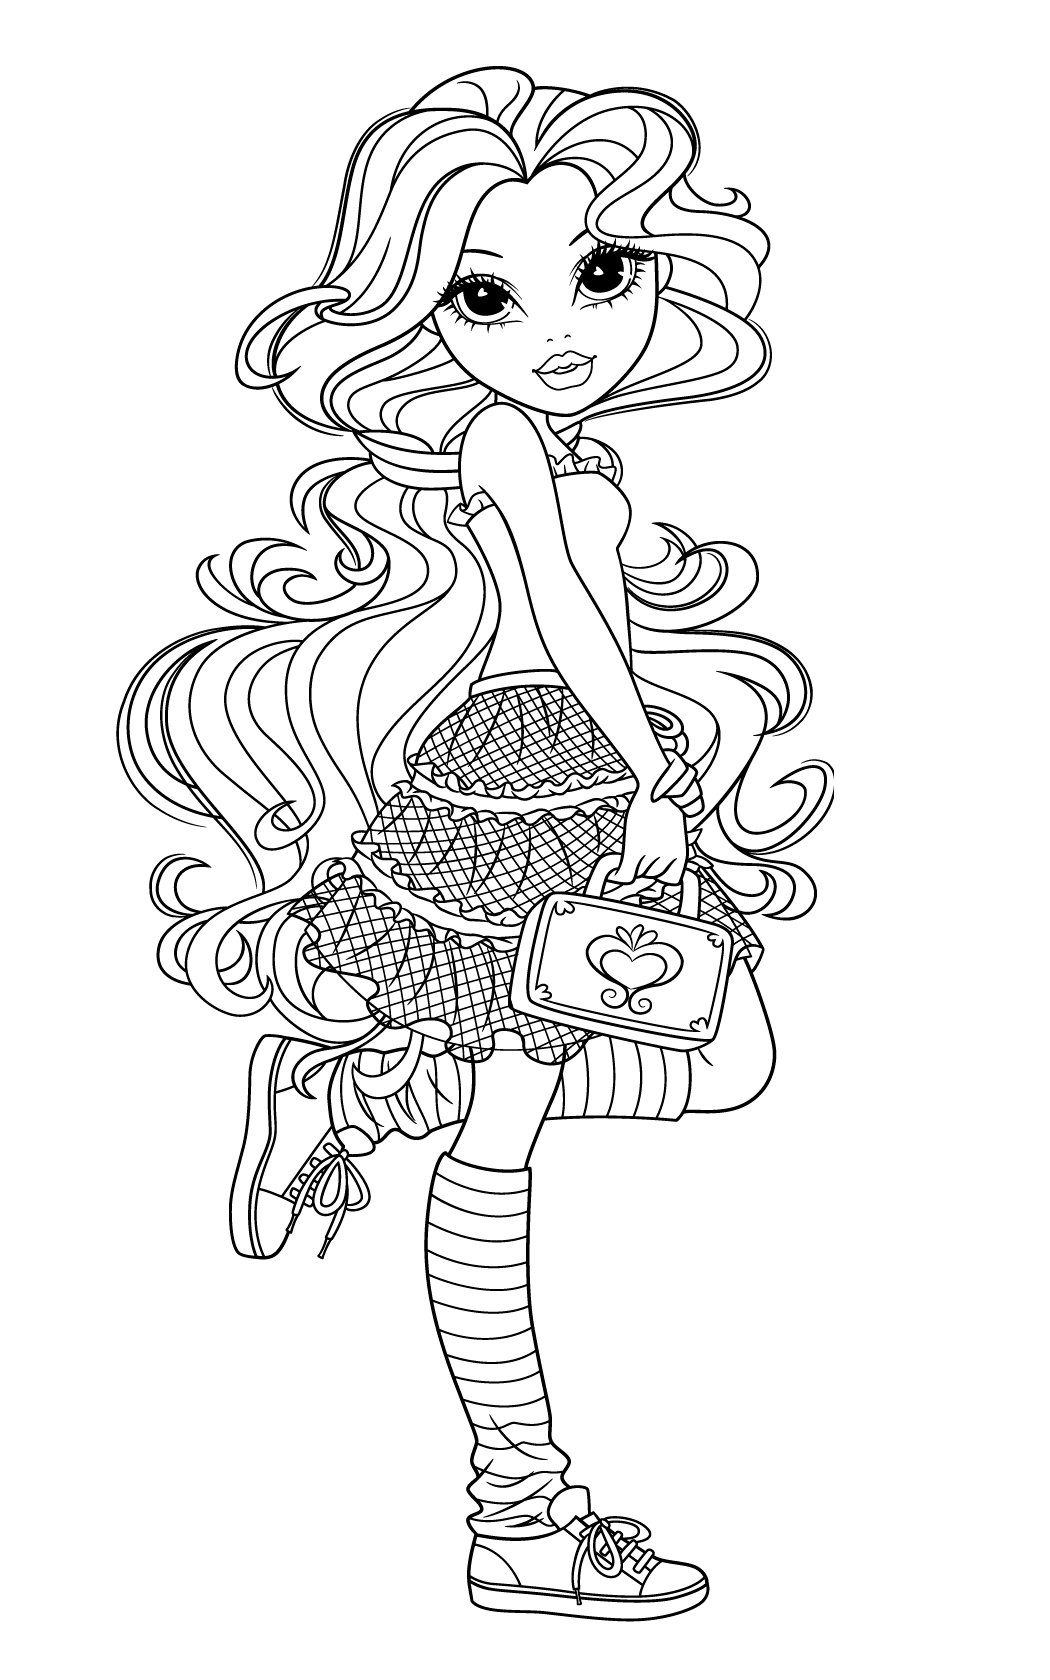 b67f4461acdfd042c8857327c2c99f5f including moxie girlz coloring pages on coloring book  on moxie girlz coloring pages additionally moxie girlz coloring pages on coloring book  on moxie girlz coloring pages also moxie girlz coloring pages on coloring book  on moxie girlz coloring pages additionally moxie girlz coloring pages coloring kids on moxie girlz coloring pages